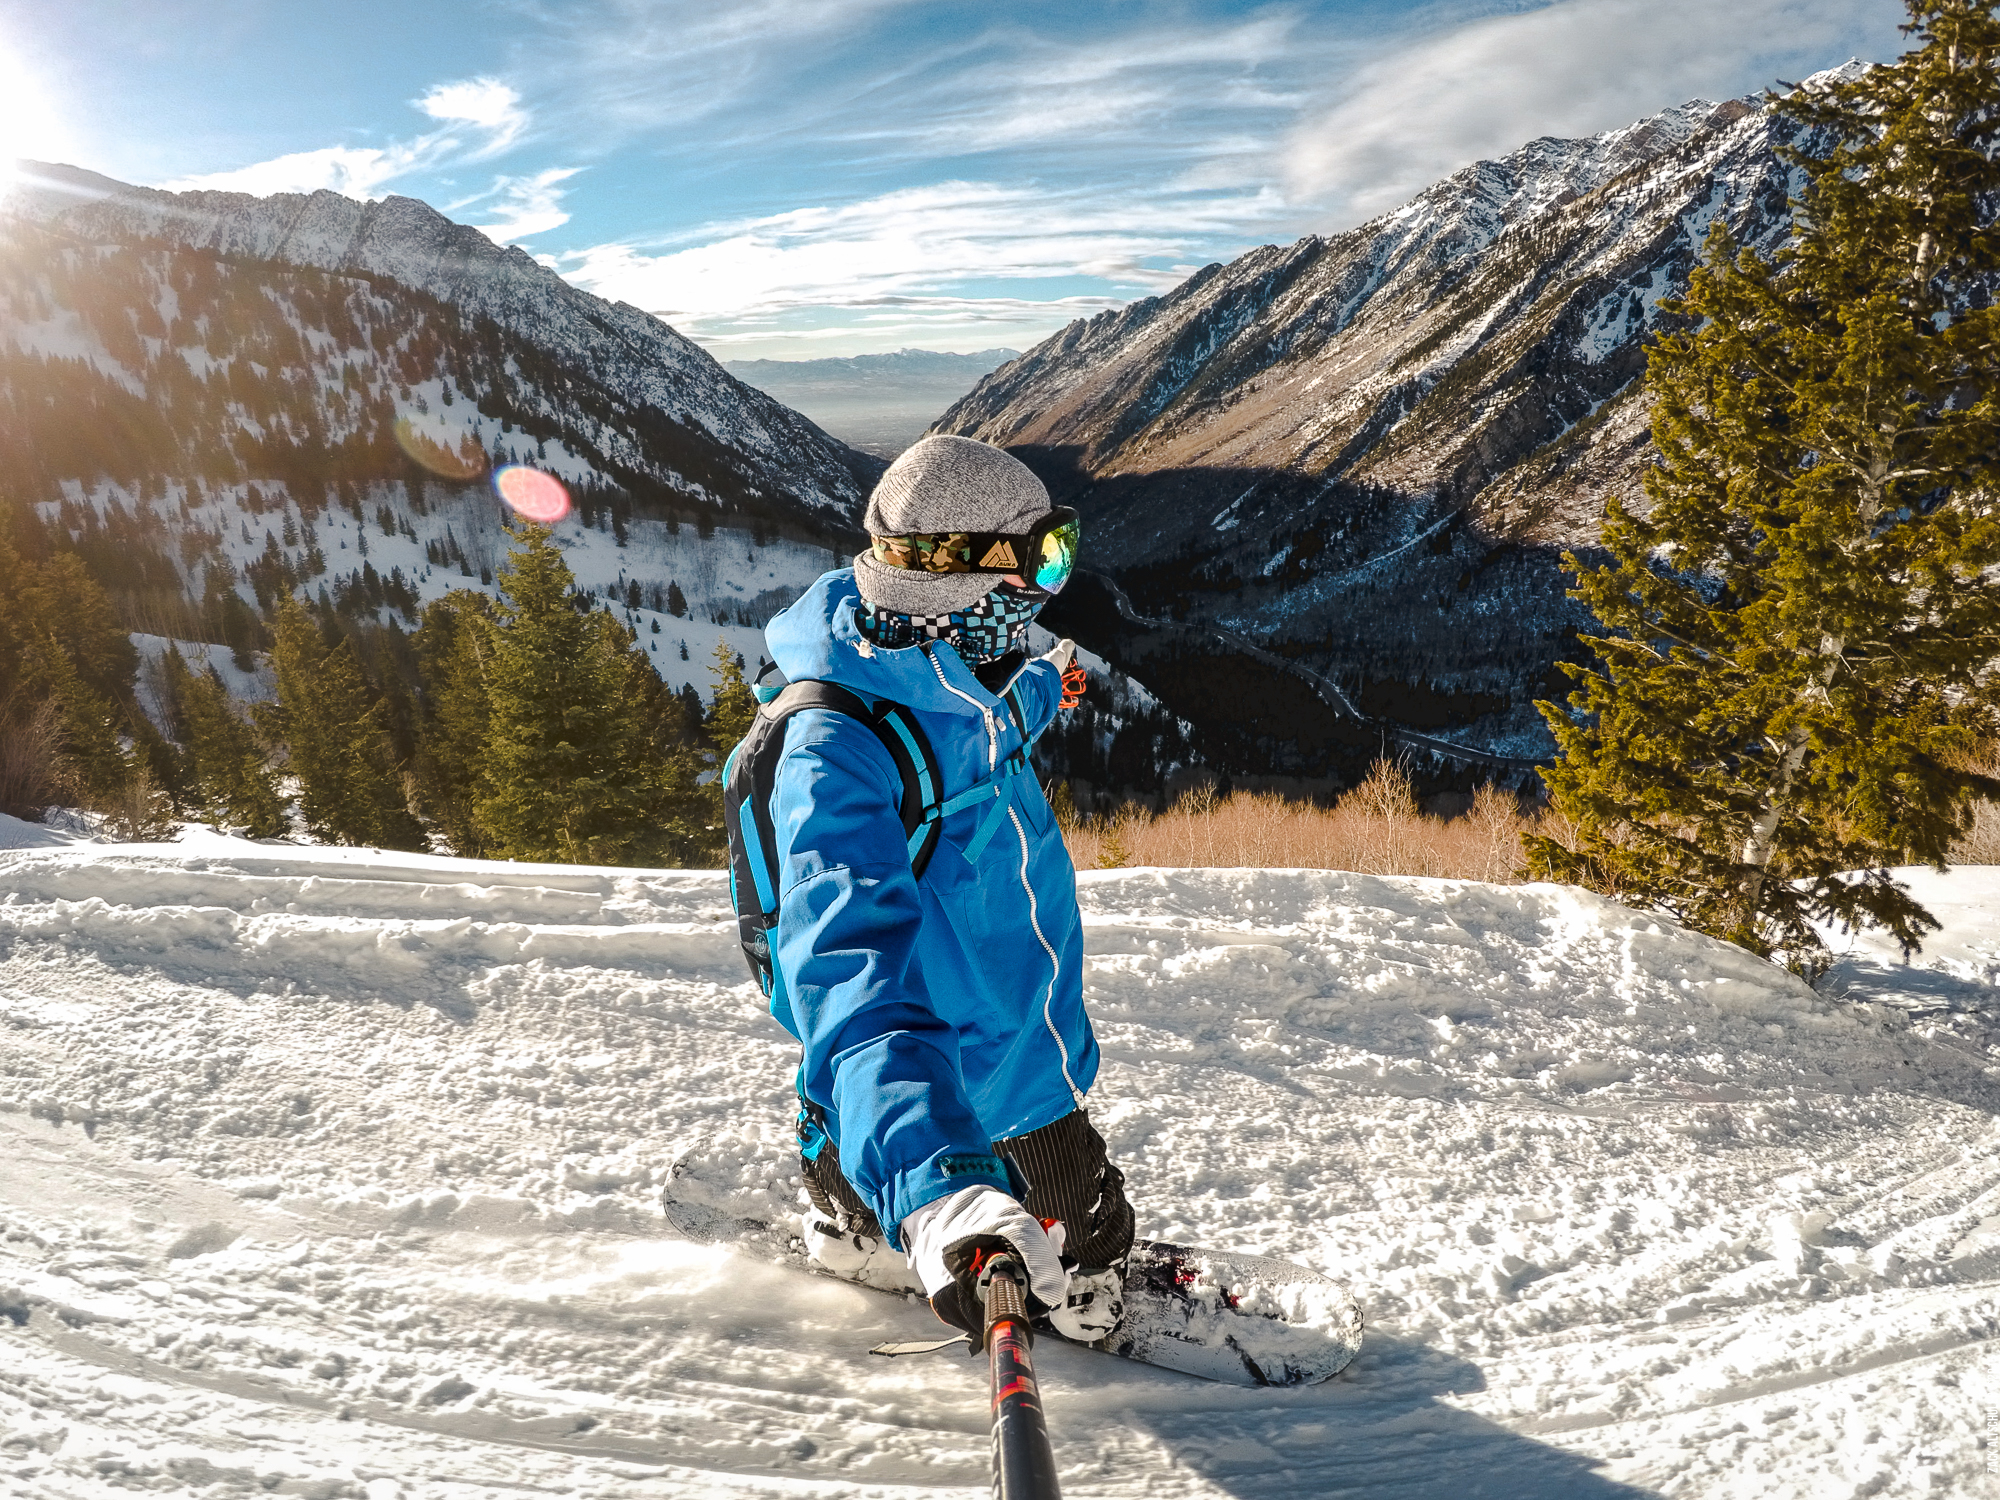 Backcountry_DownMountain-2.jpg